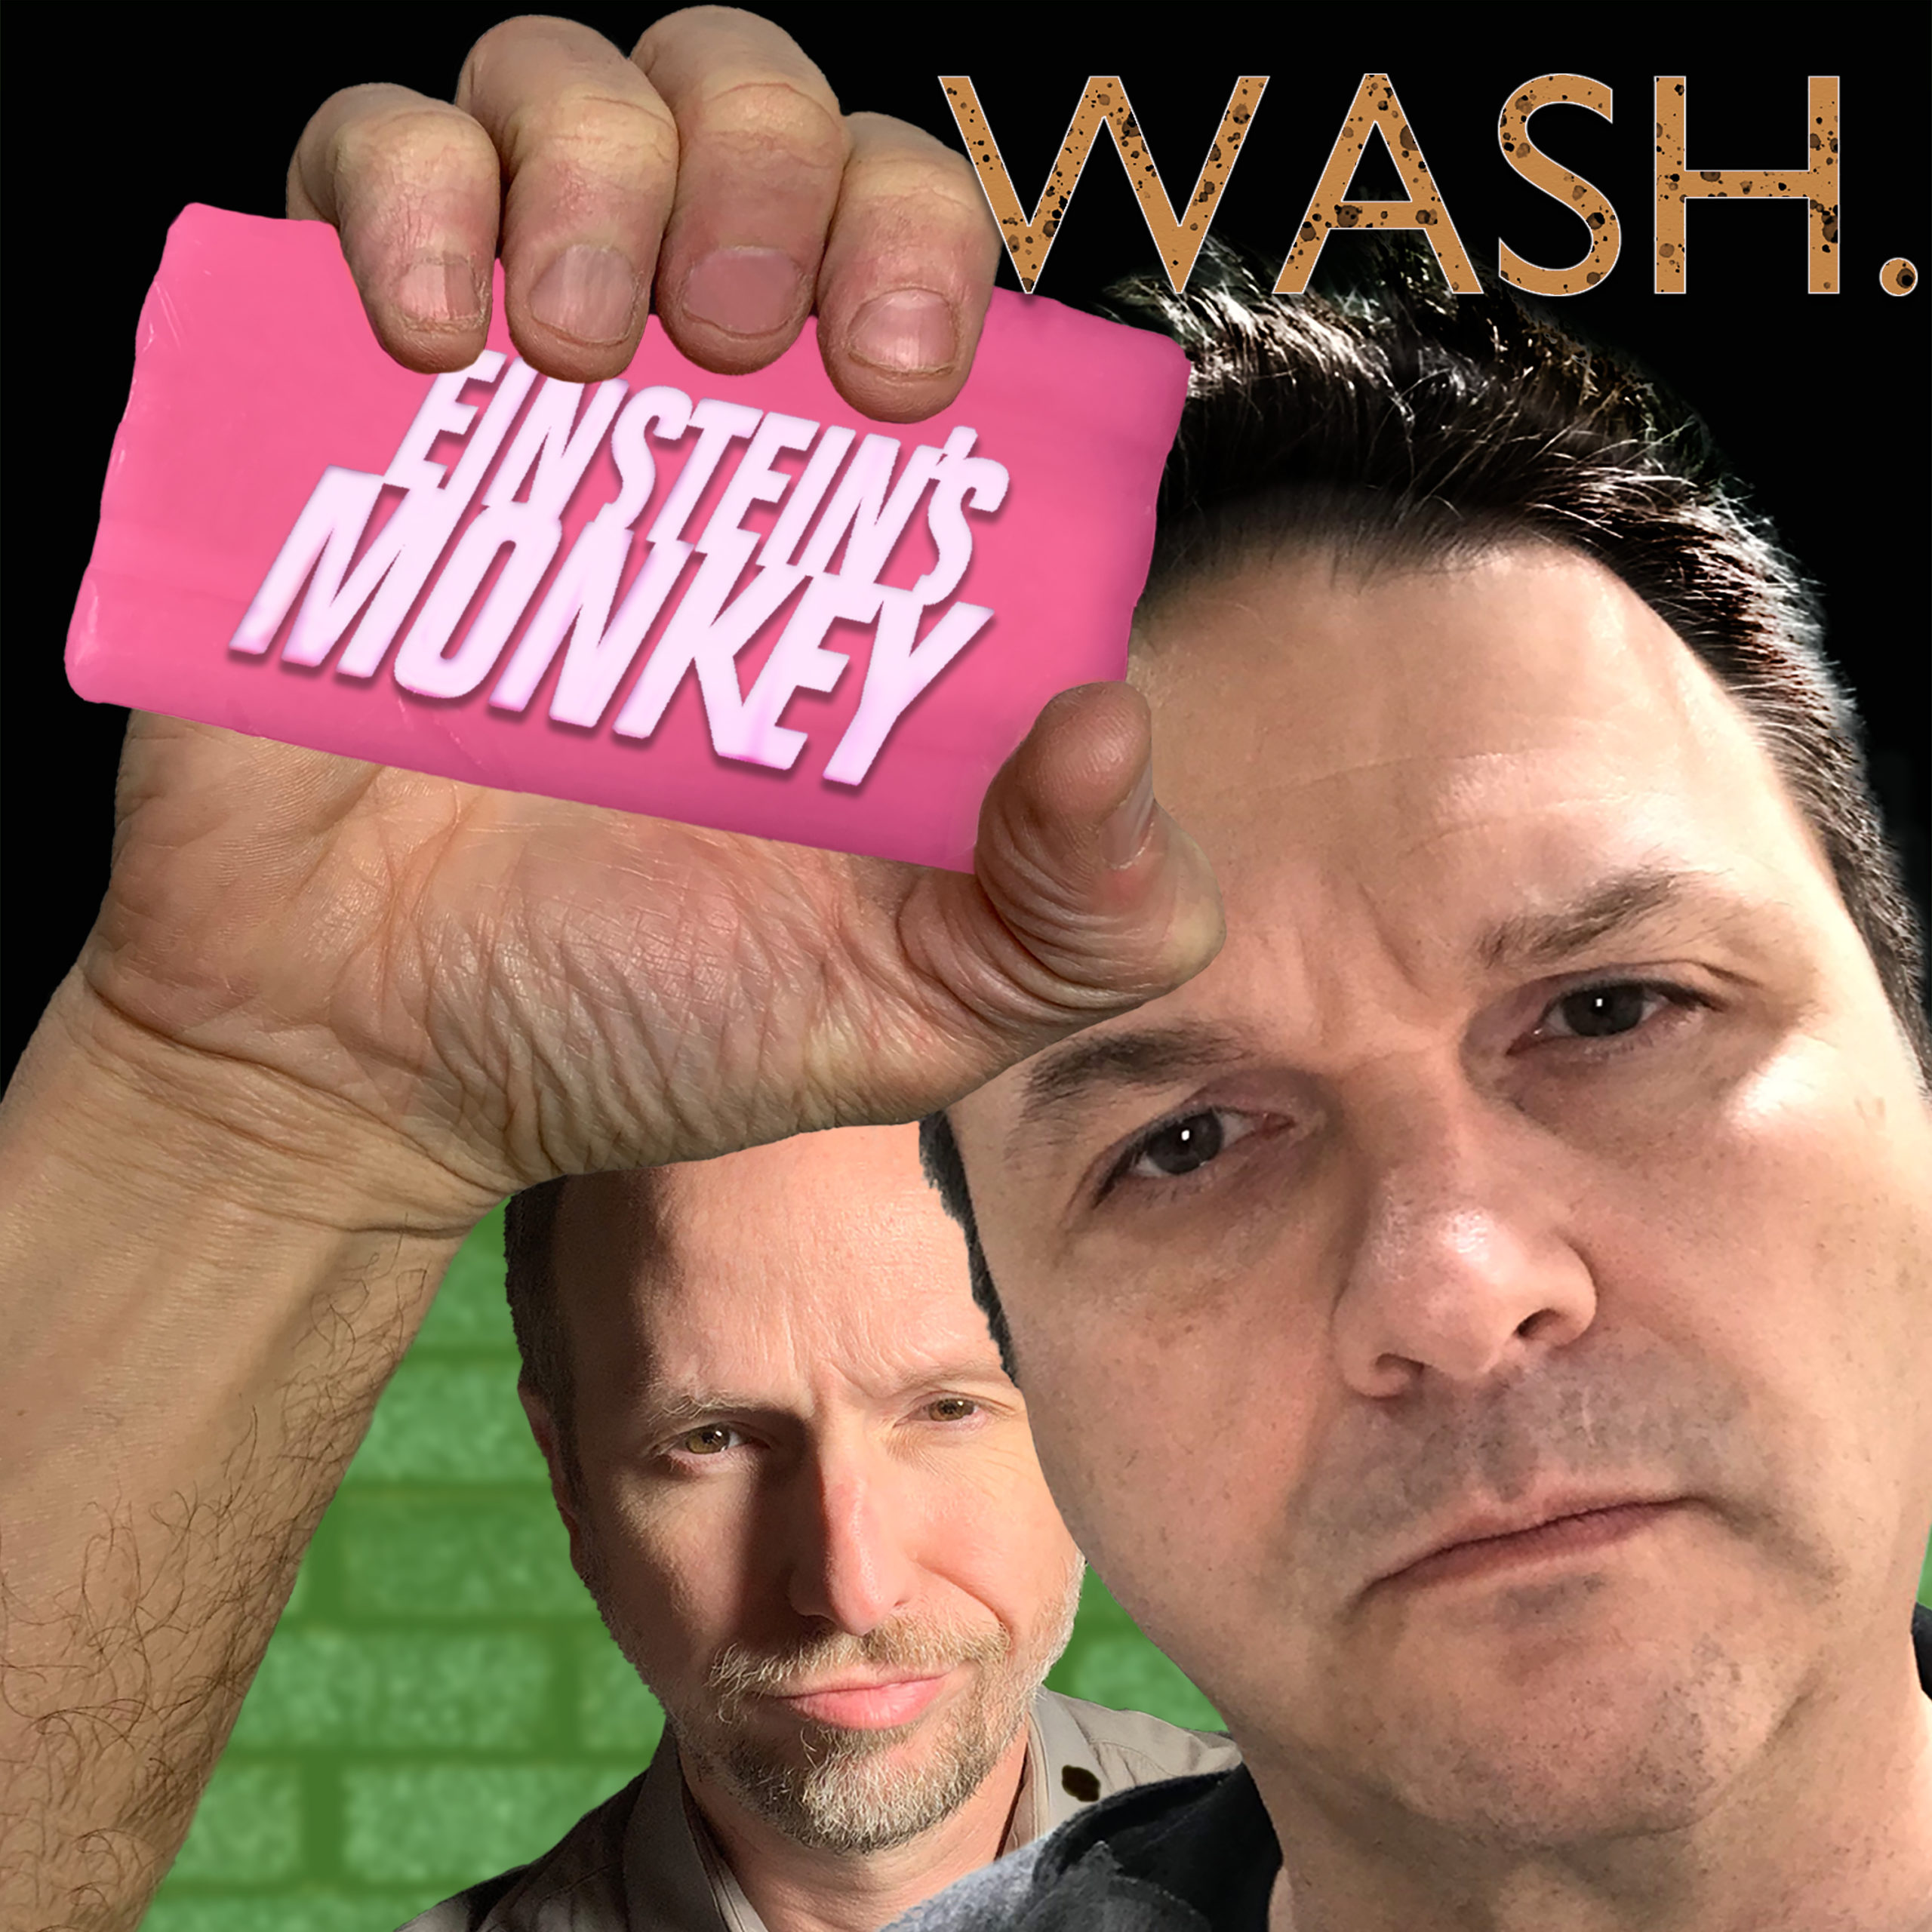 Wash album art